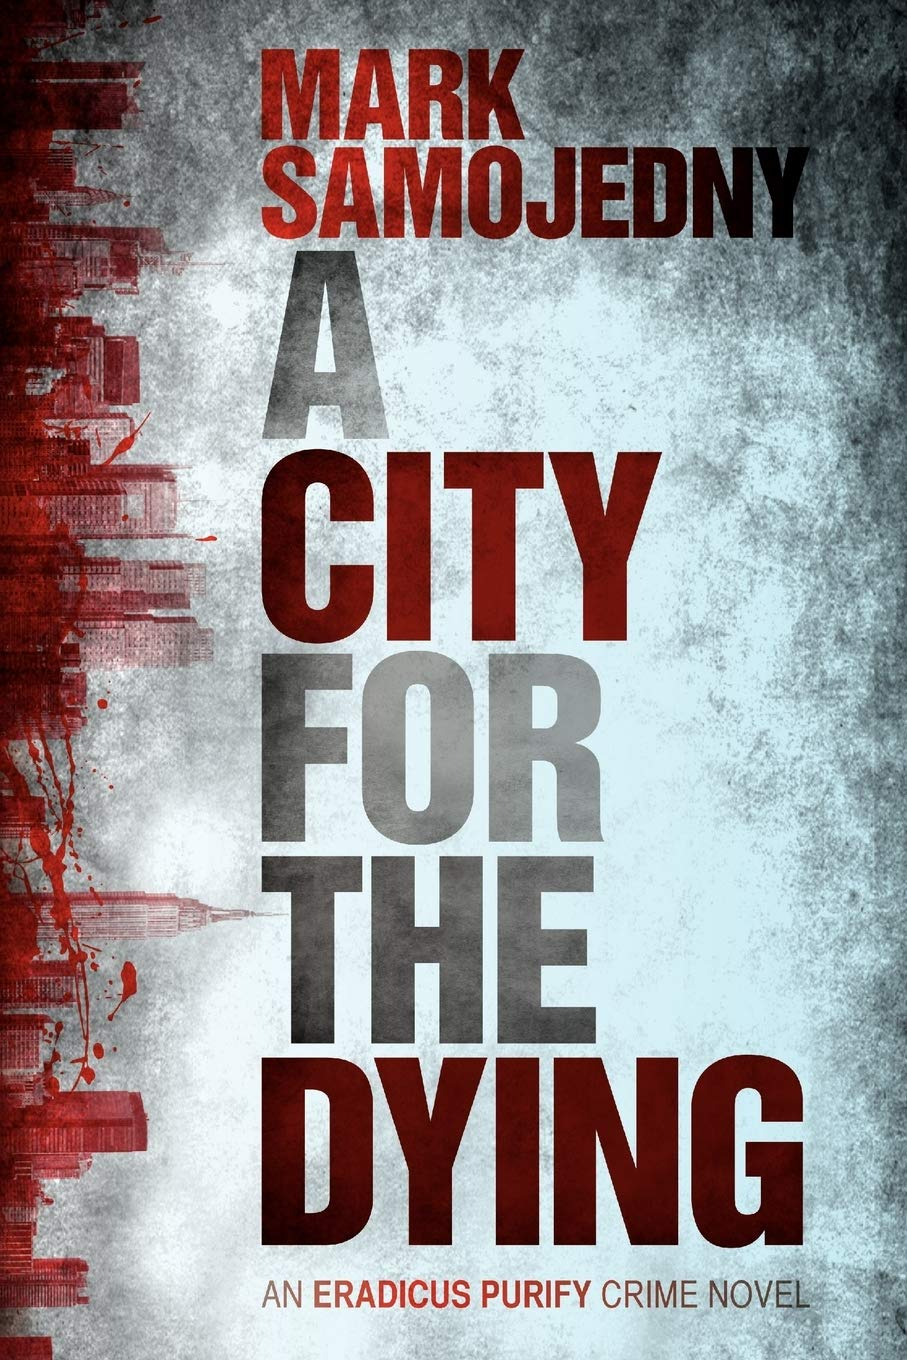 A City for the Dying: An Eradicus Purify Crime Novel: Amazon ...